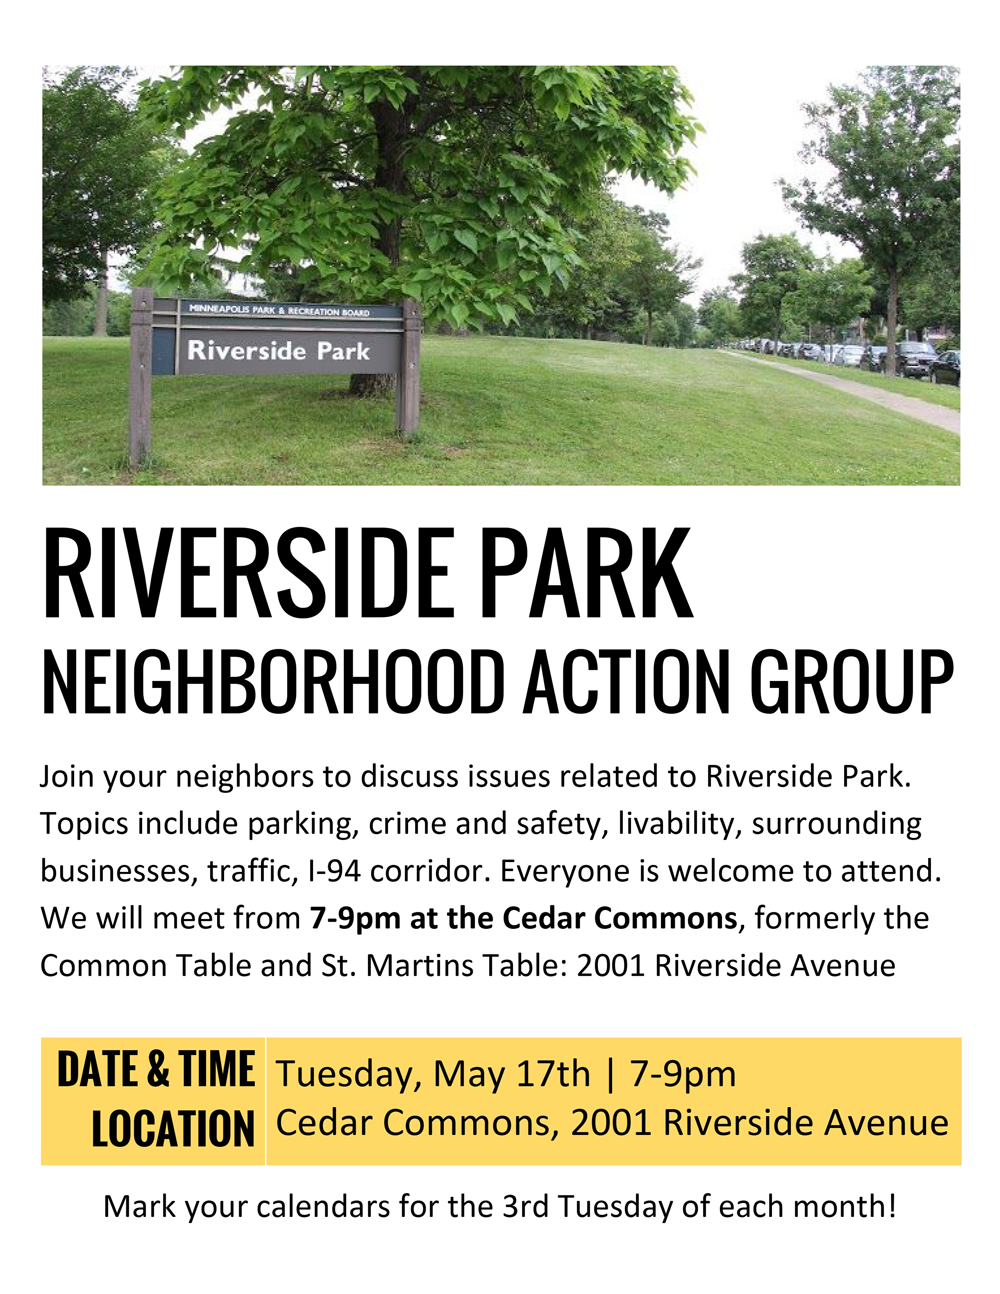 Riverside Park Neighborhood Action Group Flyer